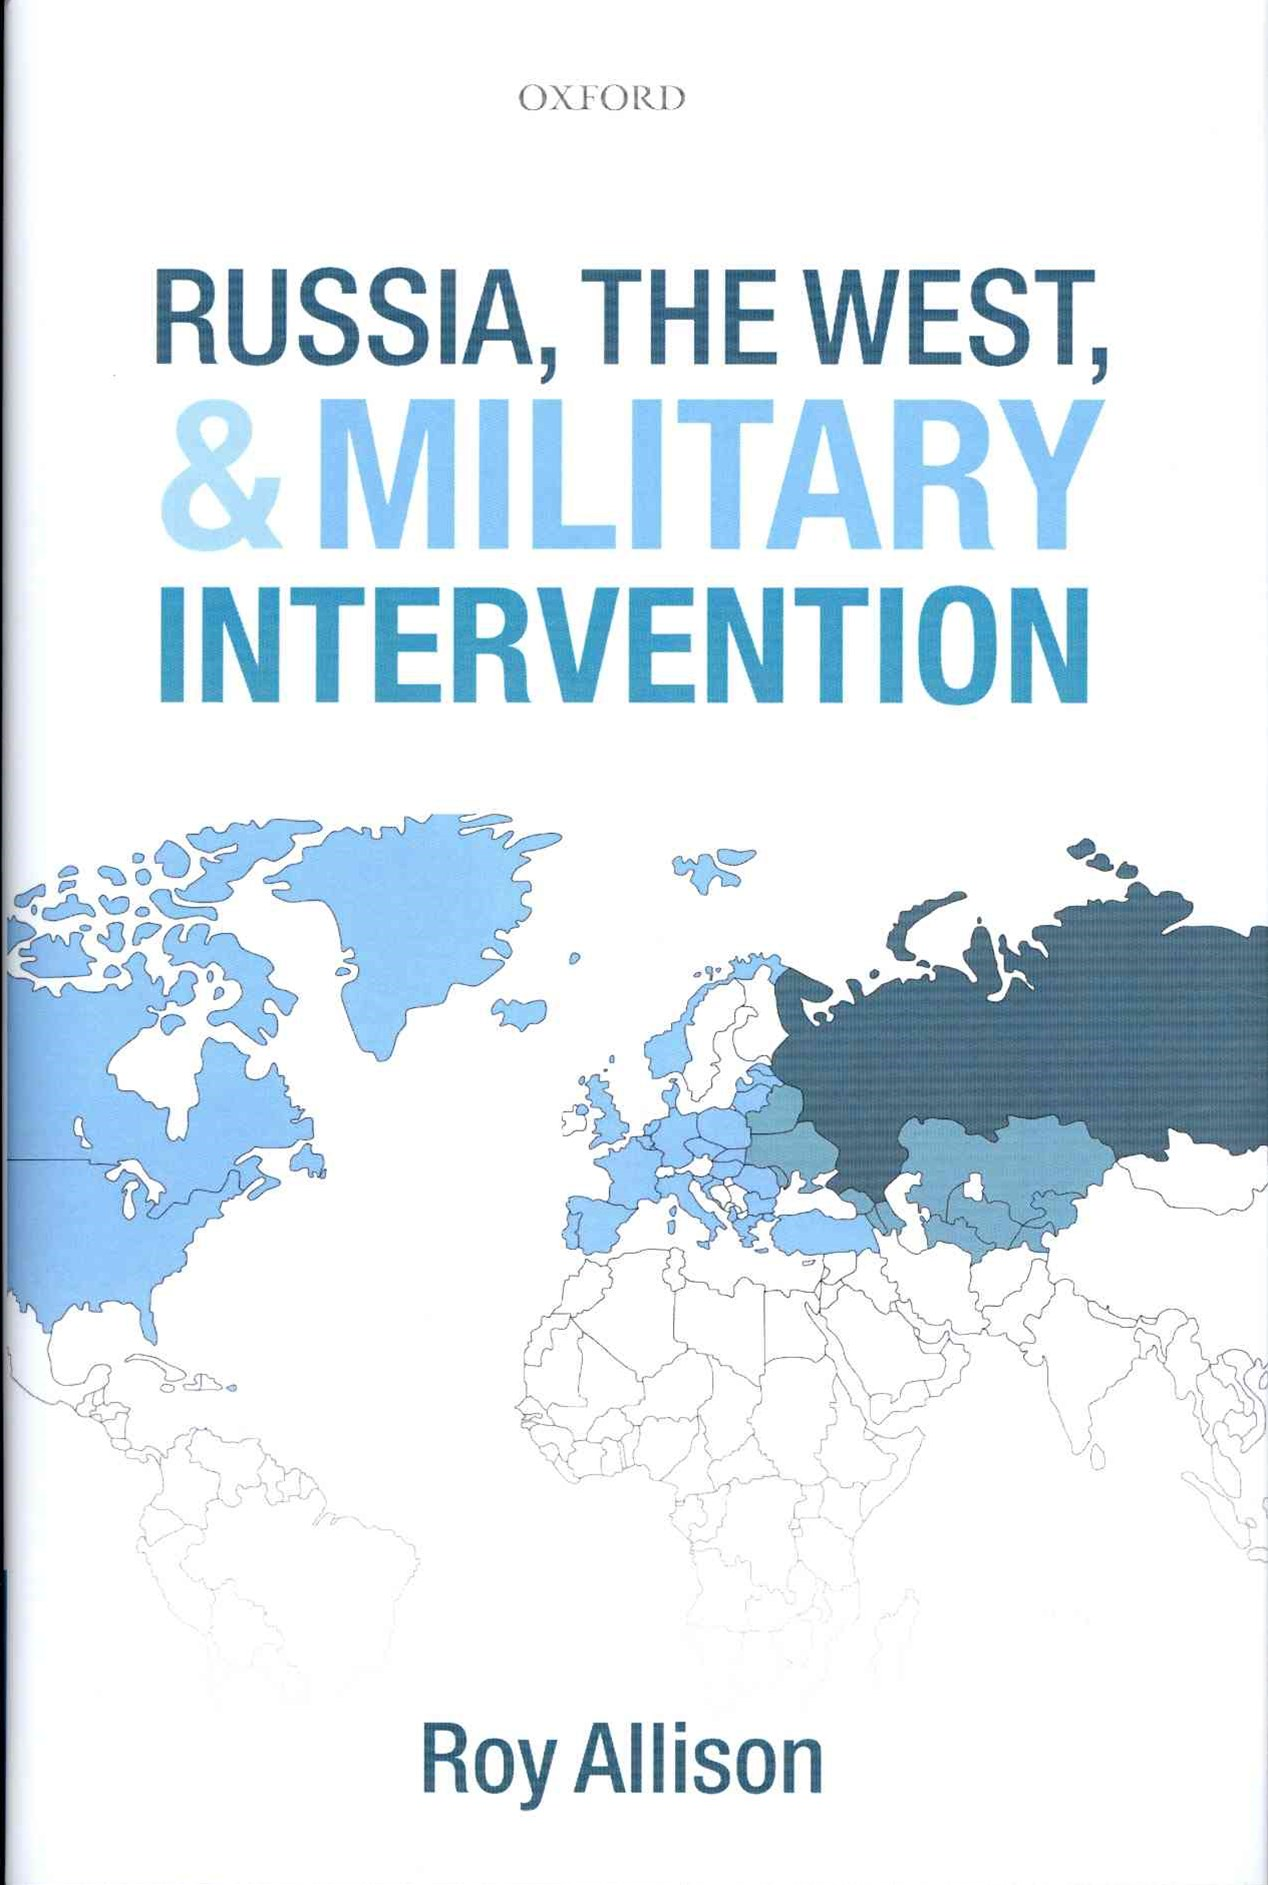 Russia, the West, and Military Intervention